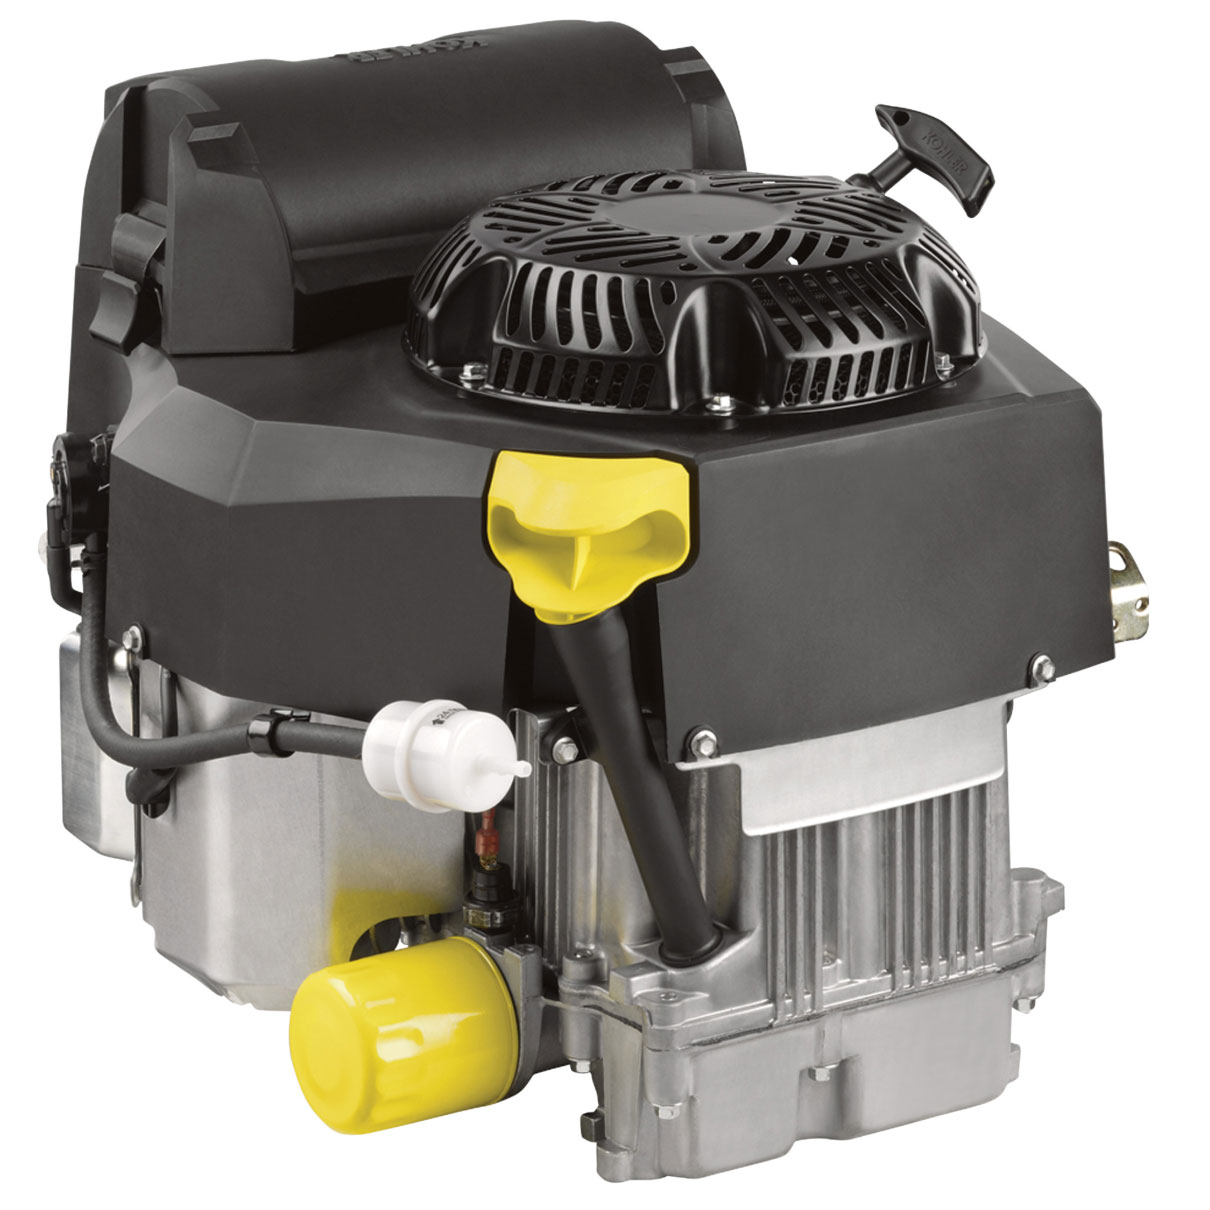 Kohler PA-ZT720-3016 Kohler Confidant Vertical Engine — 725cc with Recoil Start Item 51556